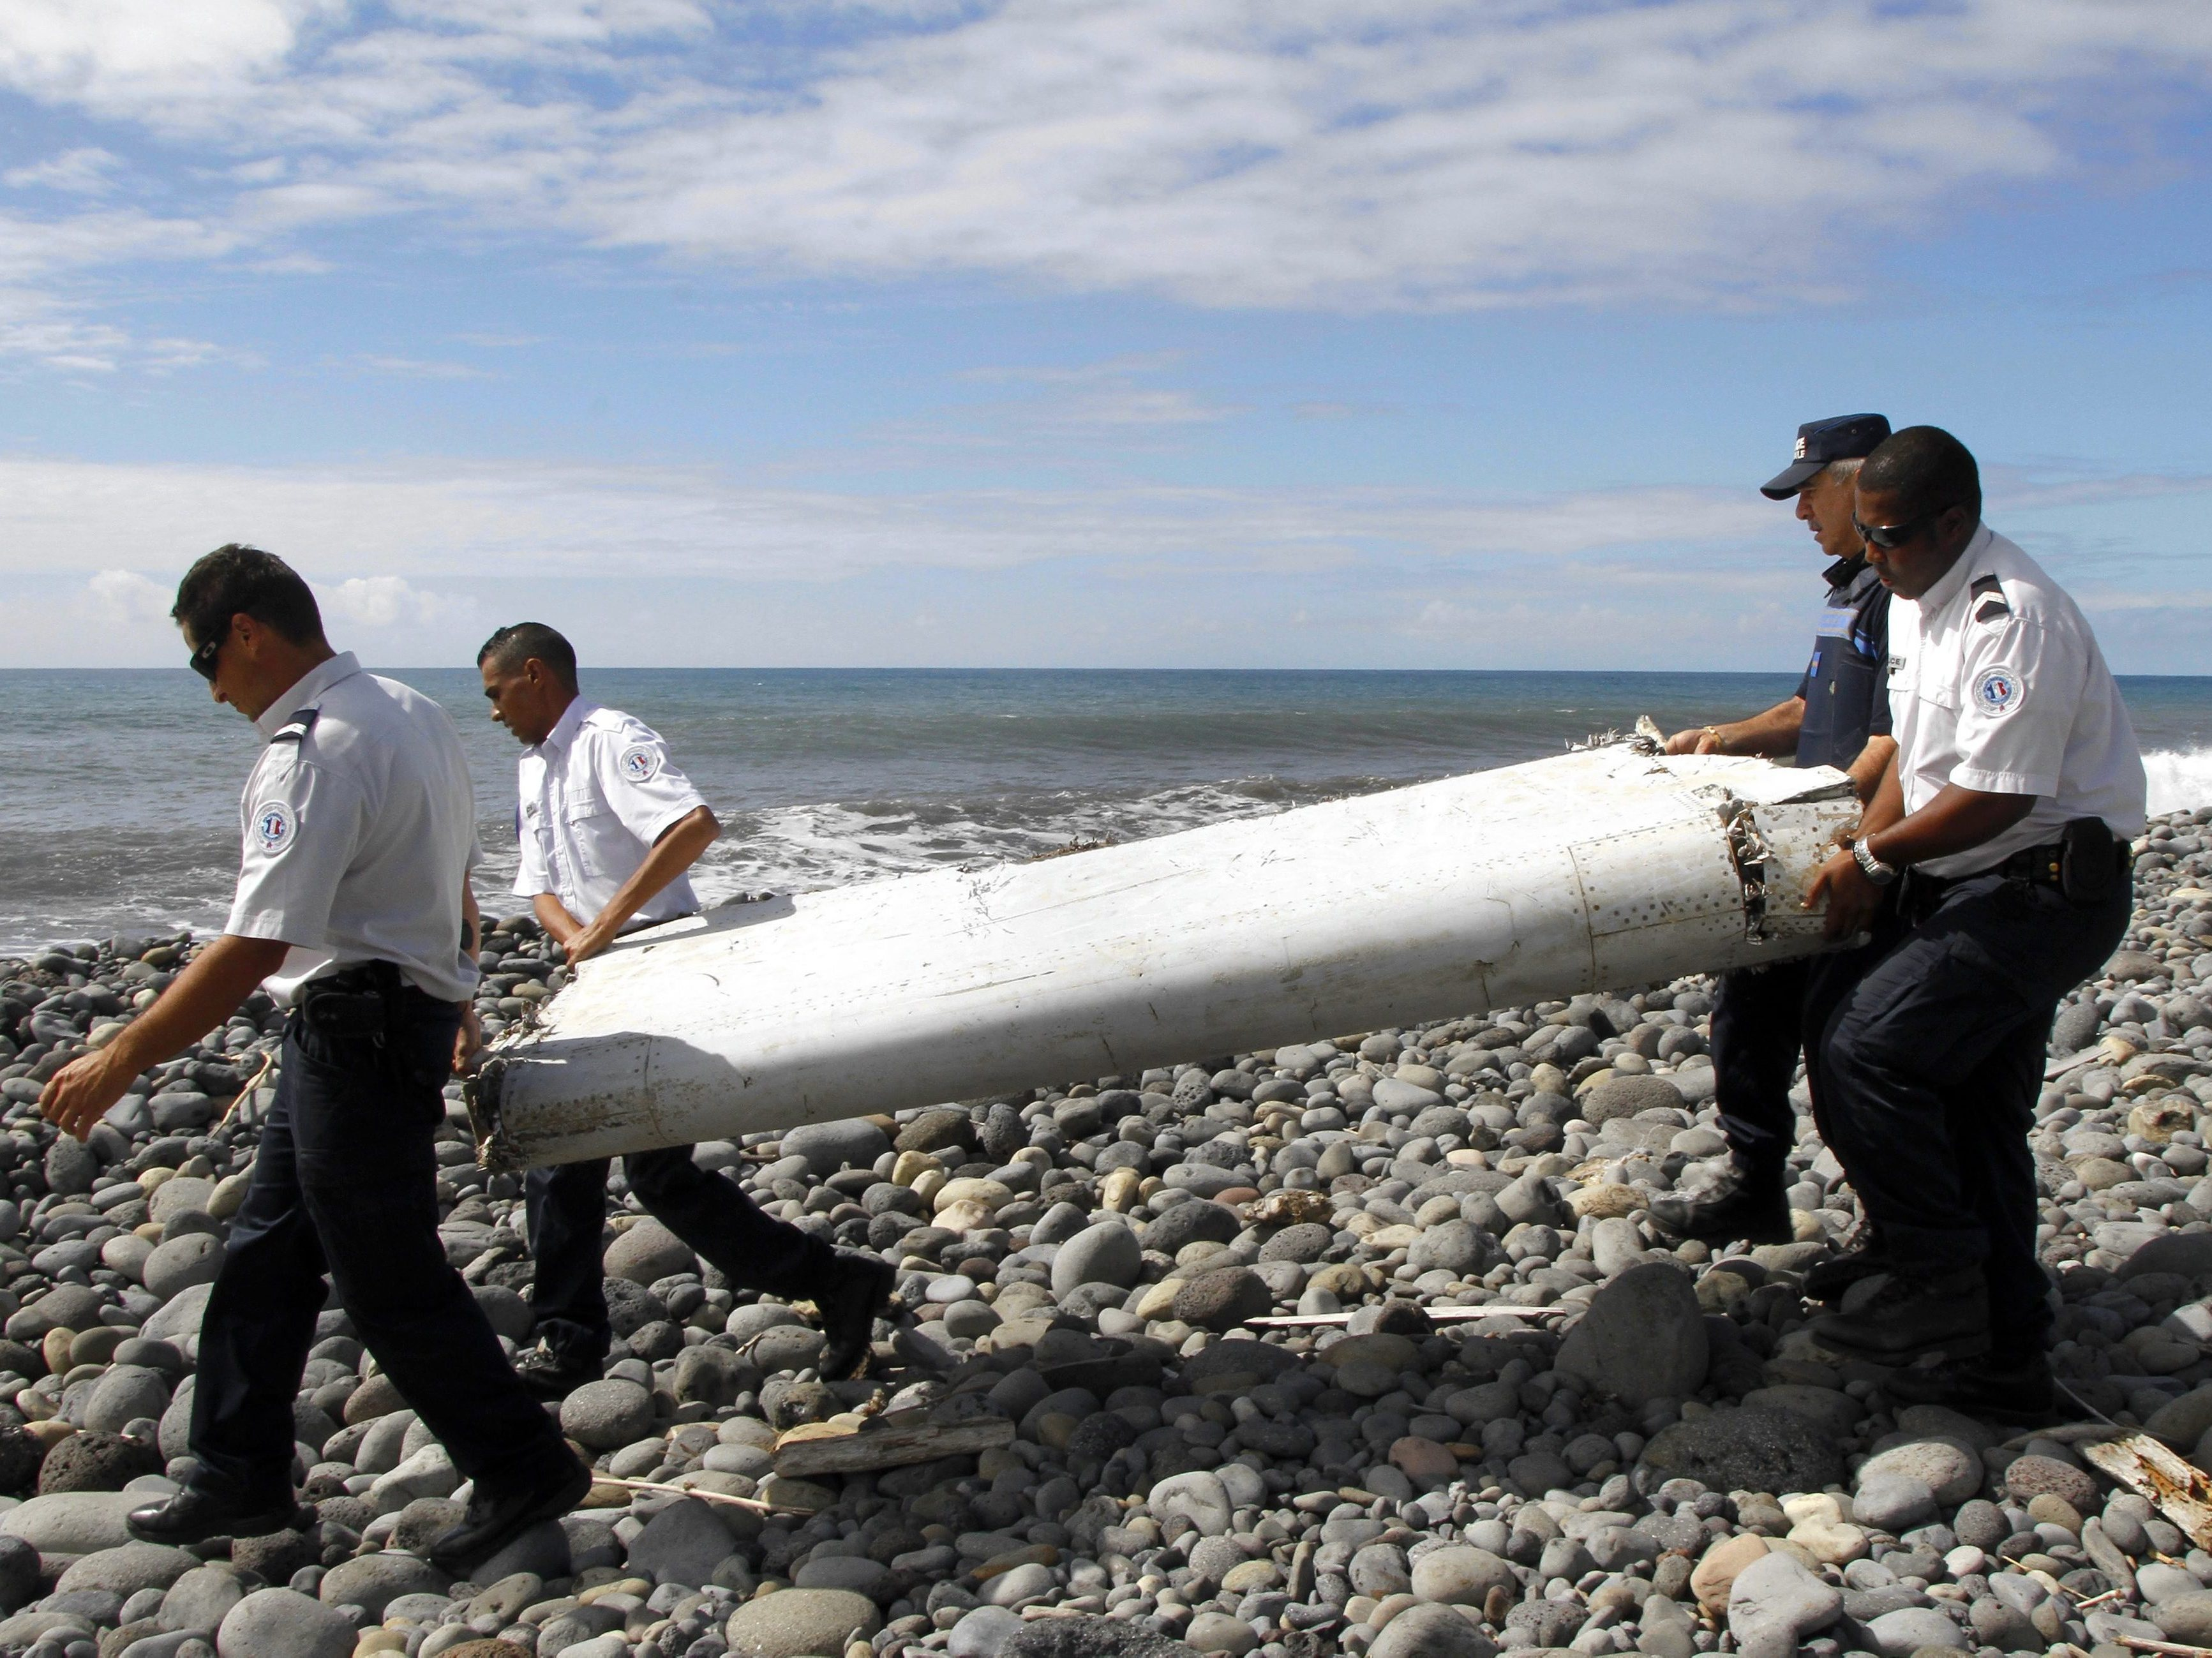 MH370 'was out of control' before crash